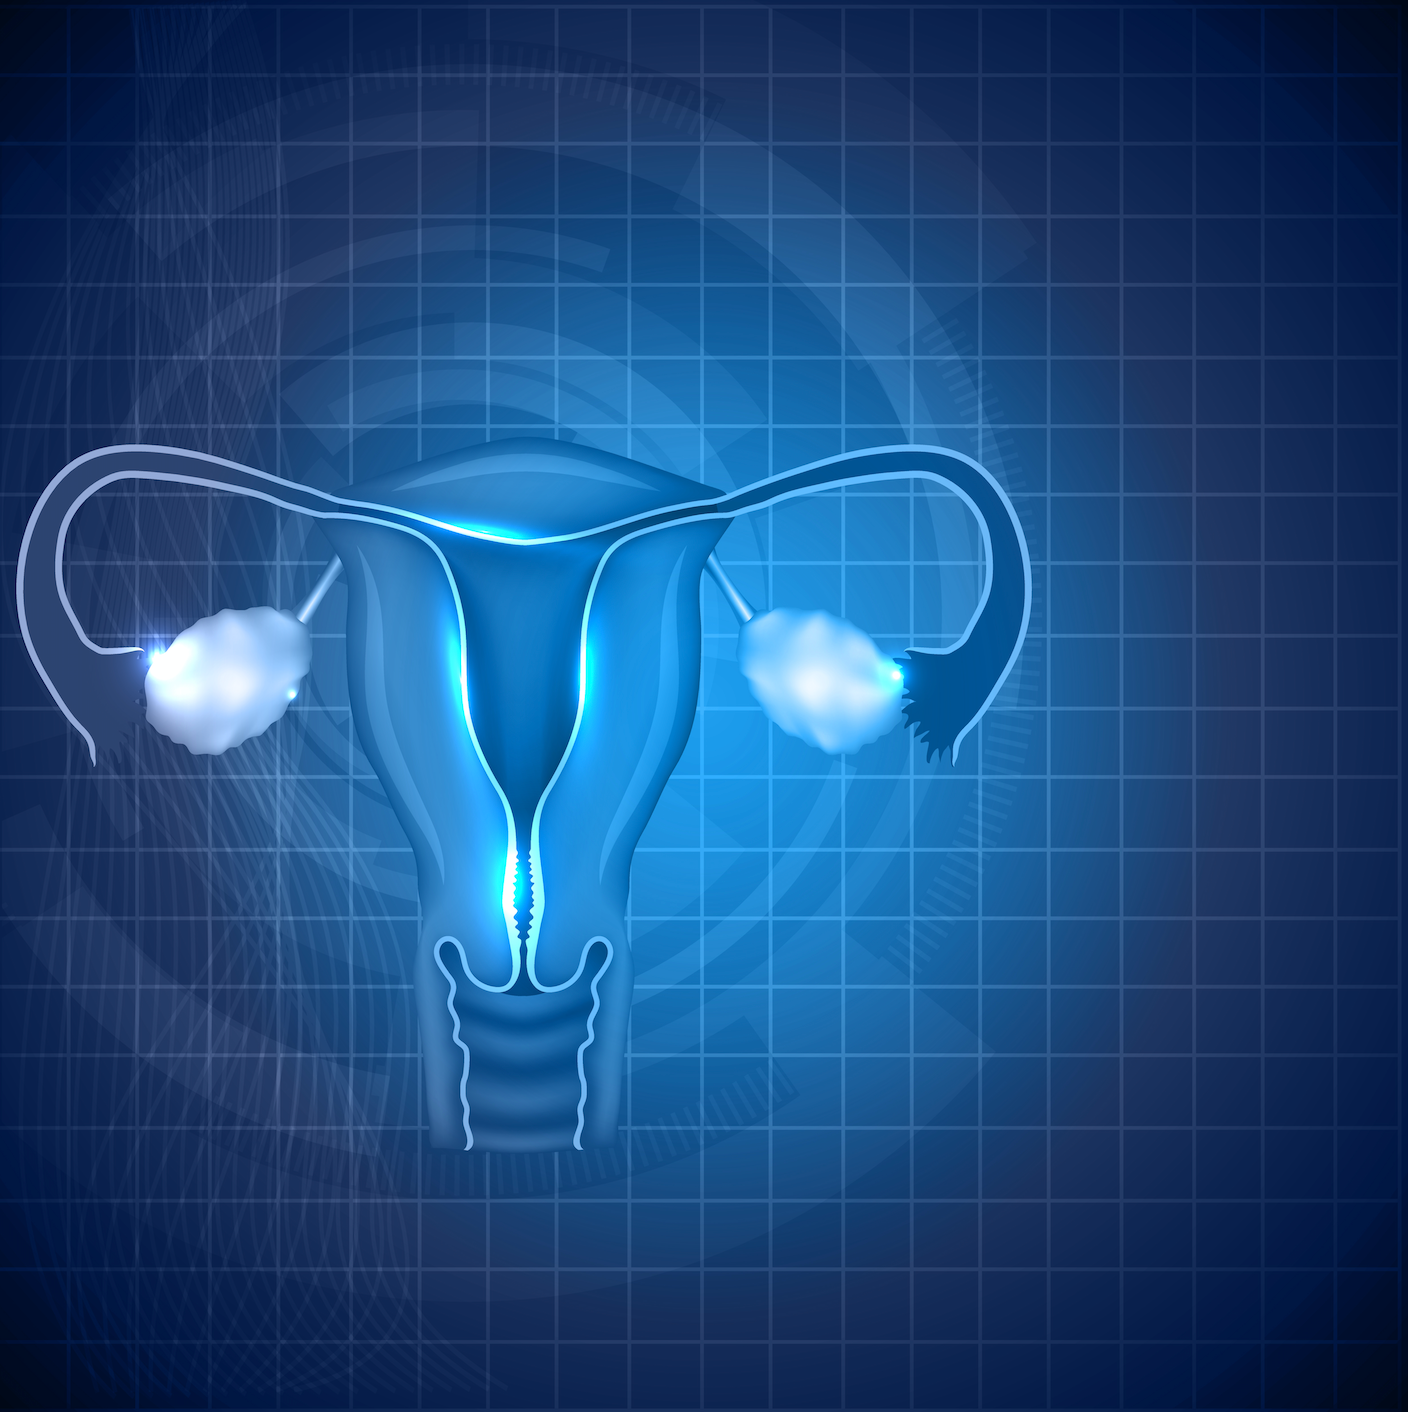 Frontline Parp Maintenance Study In Advanced Ovarian Cancer Ready To Start Treatment Targeted Oncology Immunotherapy Biomarkers And Cancer Pathways